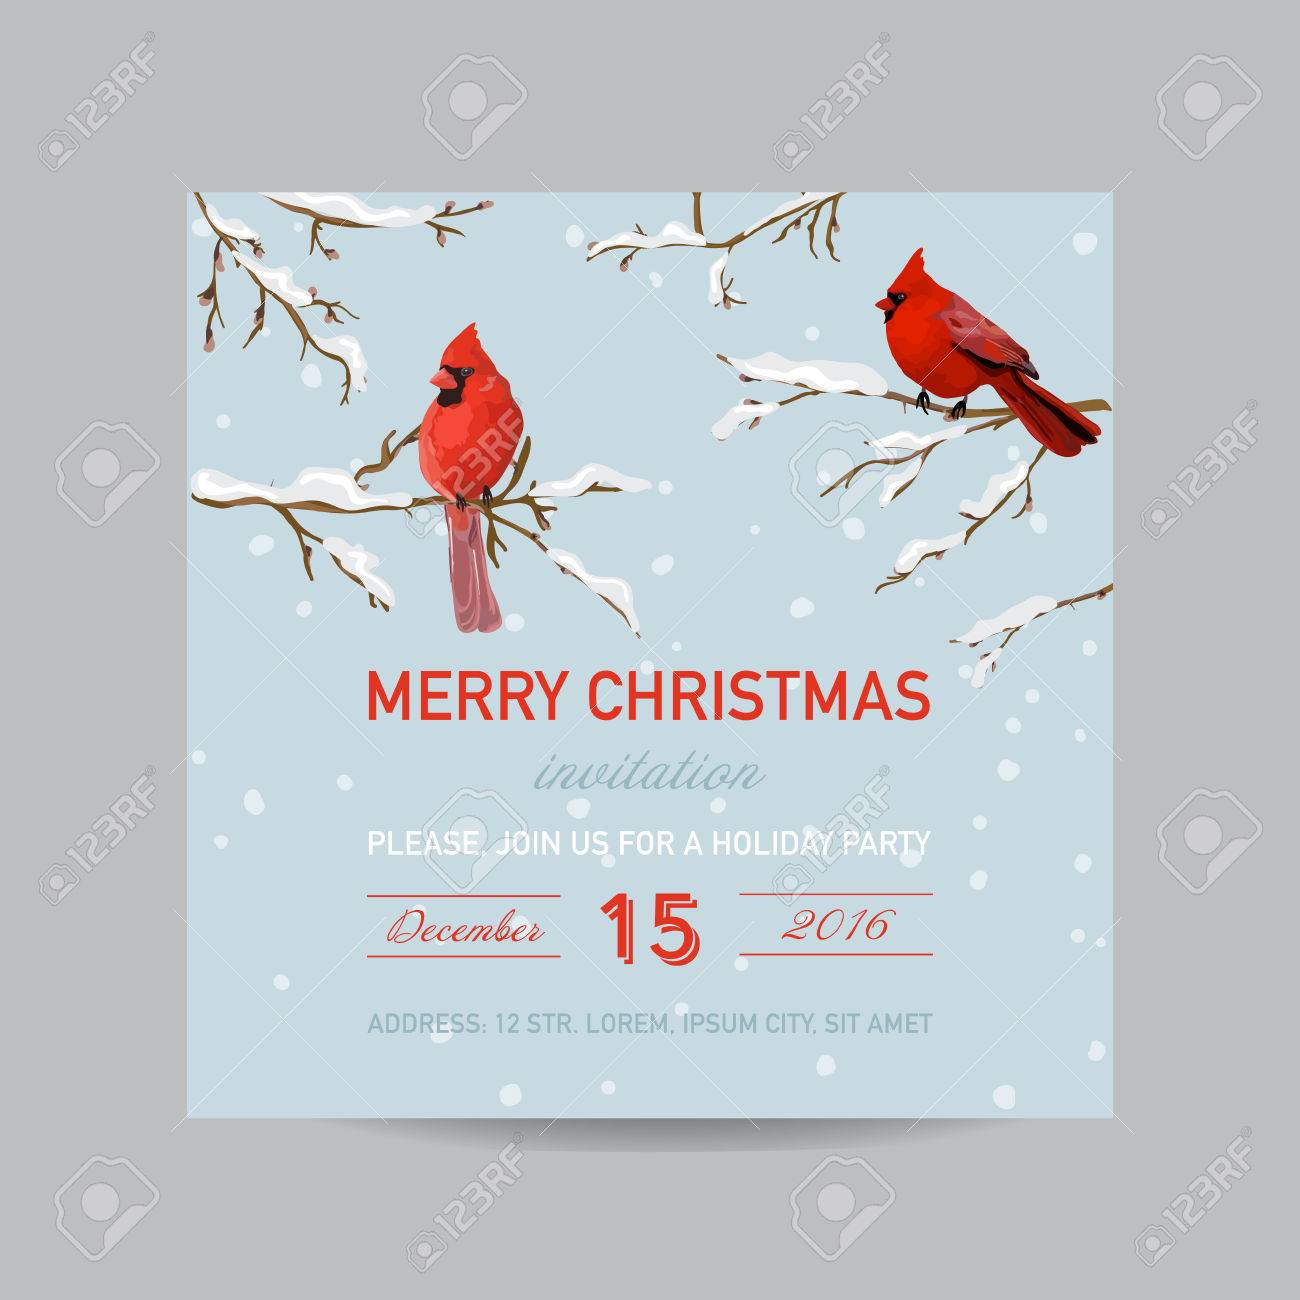 doc christmas invitation card psd christmas christmas invitation card winter birds in watercolor style christmas invitation card